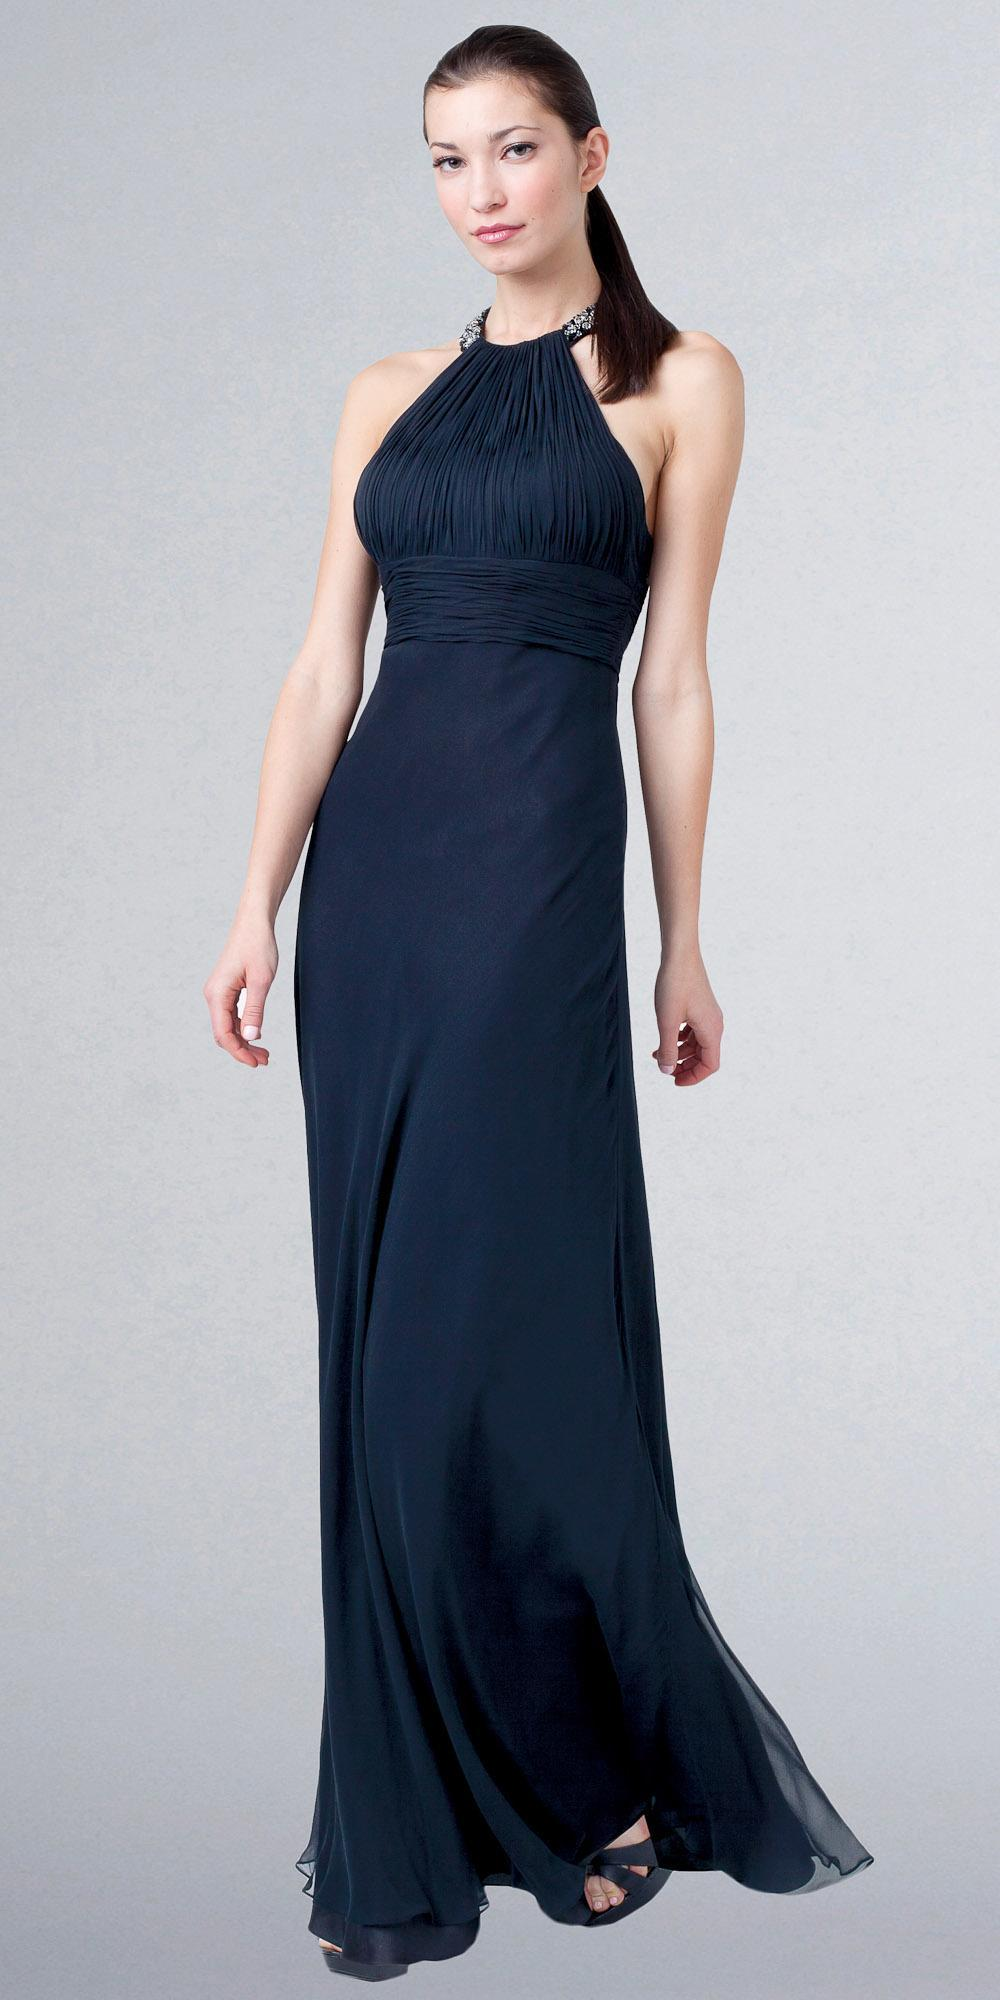 Maxi Dresses for evening Functions